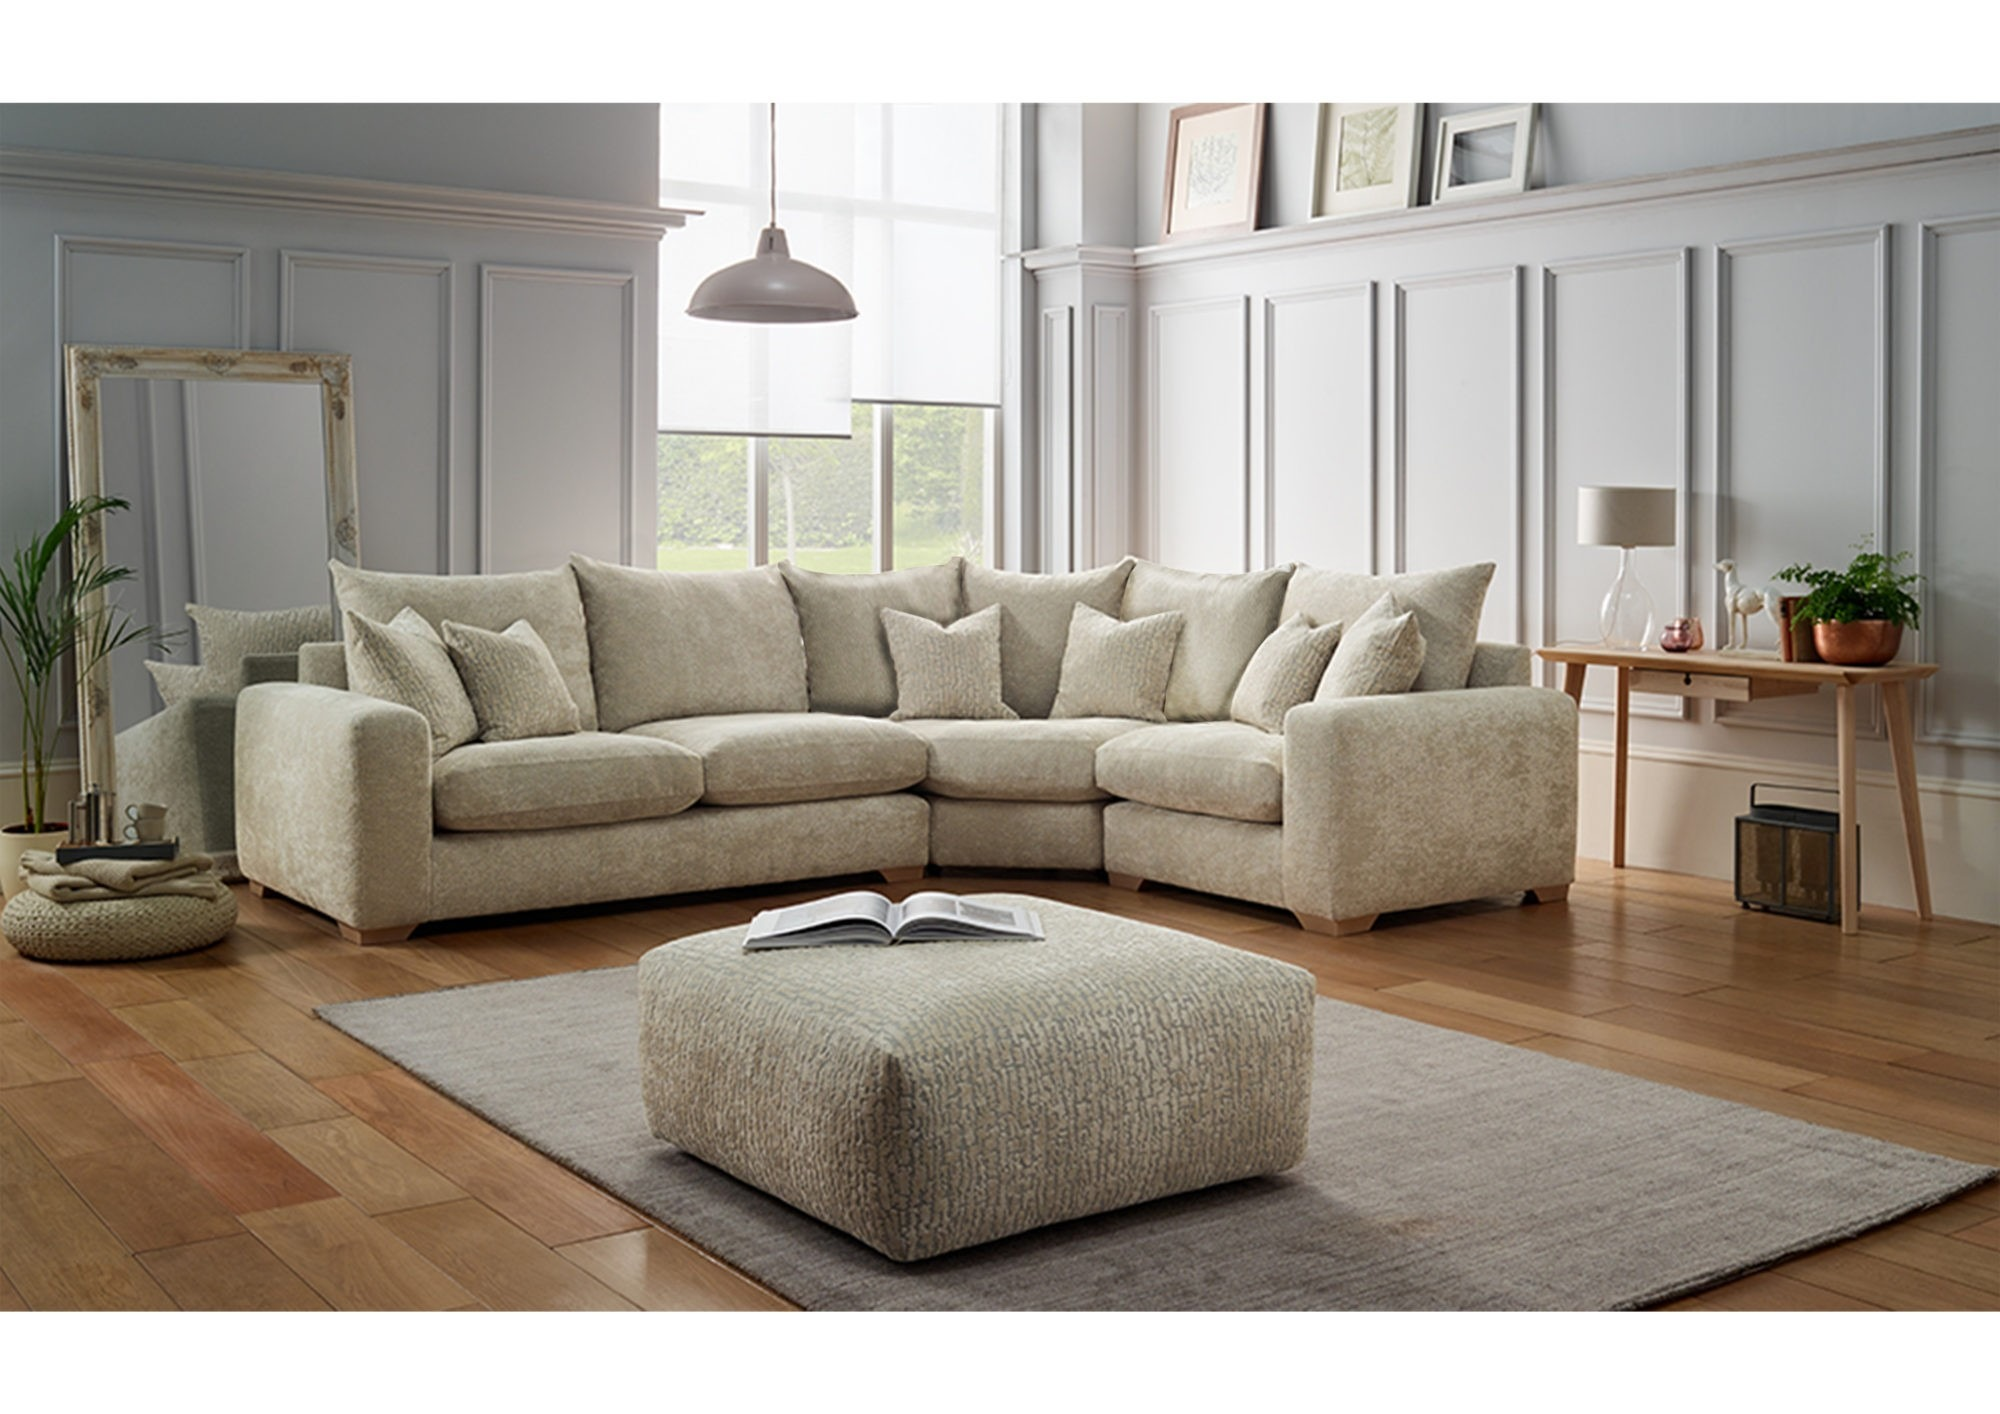 RICHMOND LARGE CORNER SOFA - L320cm x D246cm x H97cm